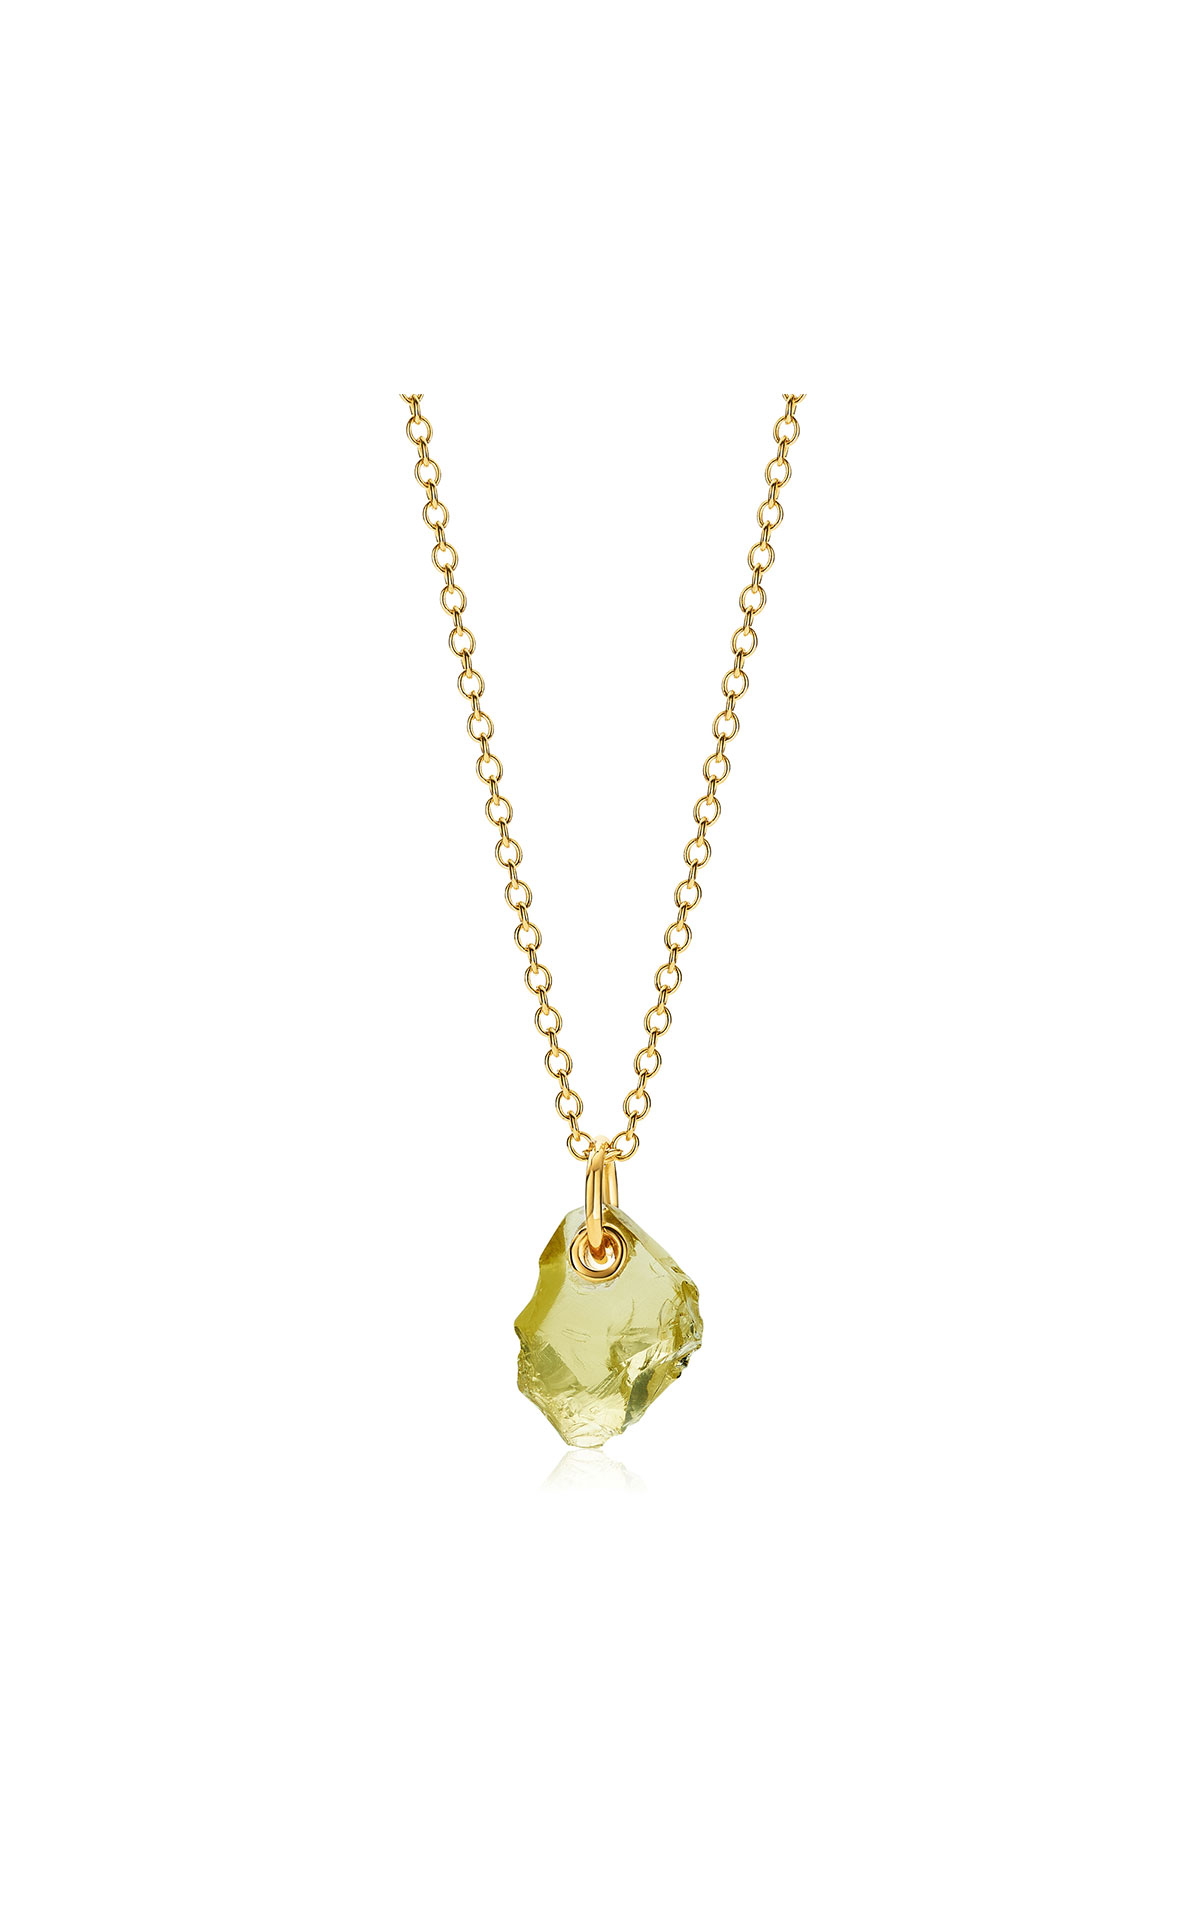 Monica Vinader Gold vermeil gemstone large pendant adjustable necklace  - lemon quartz from Bicester Village